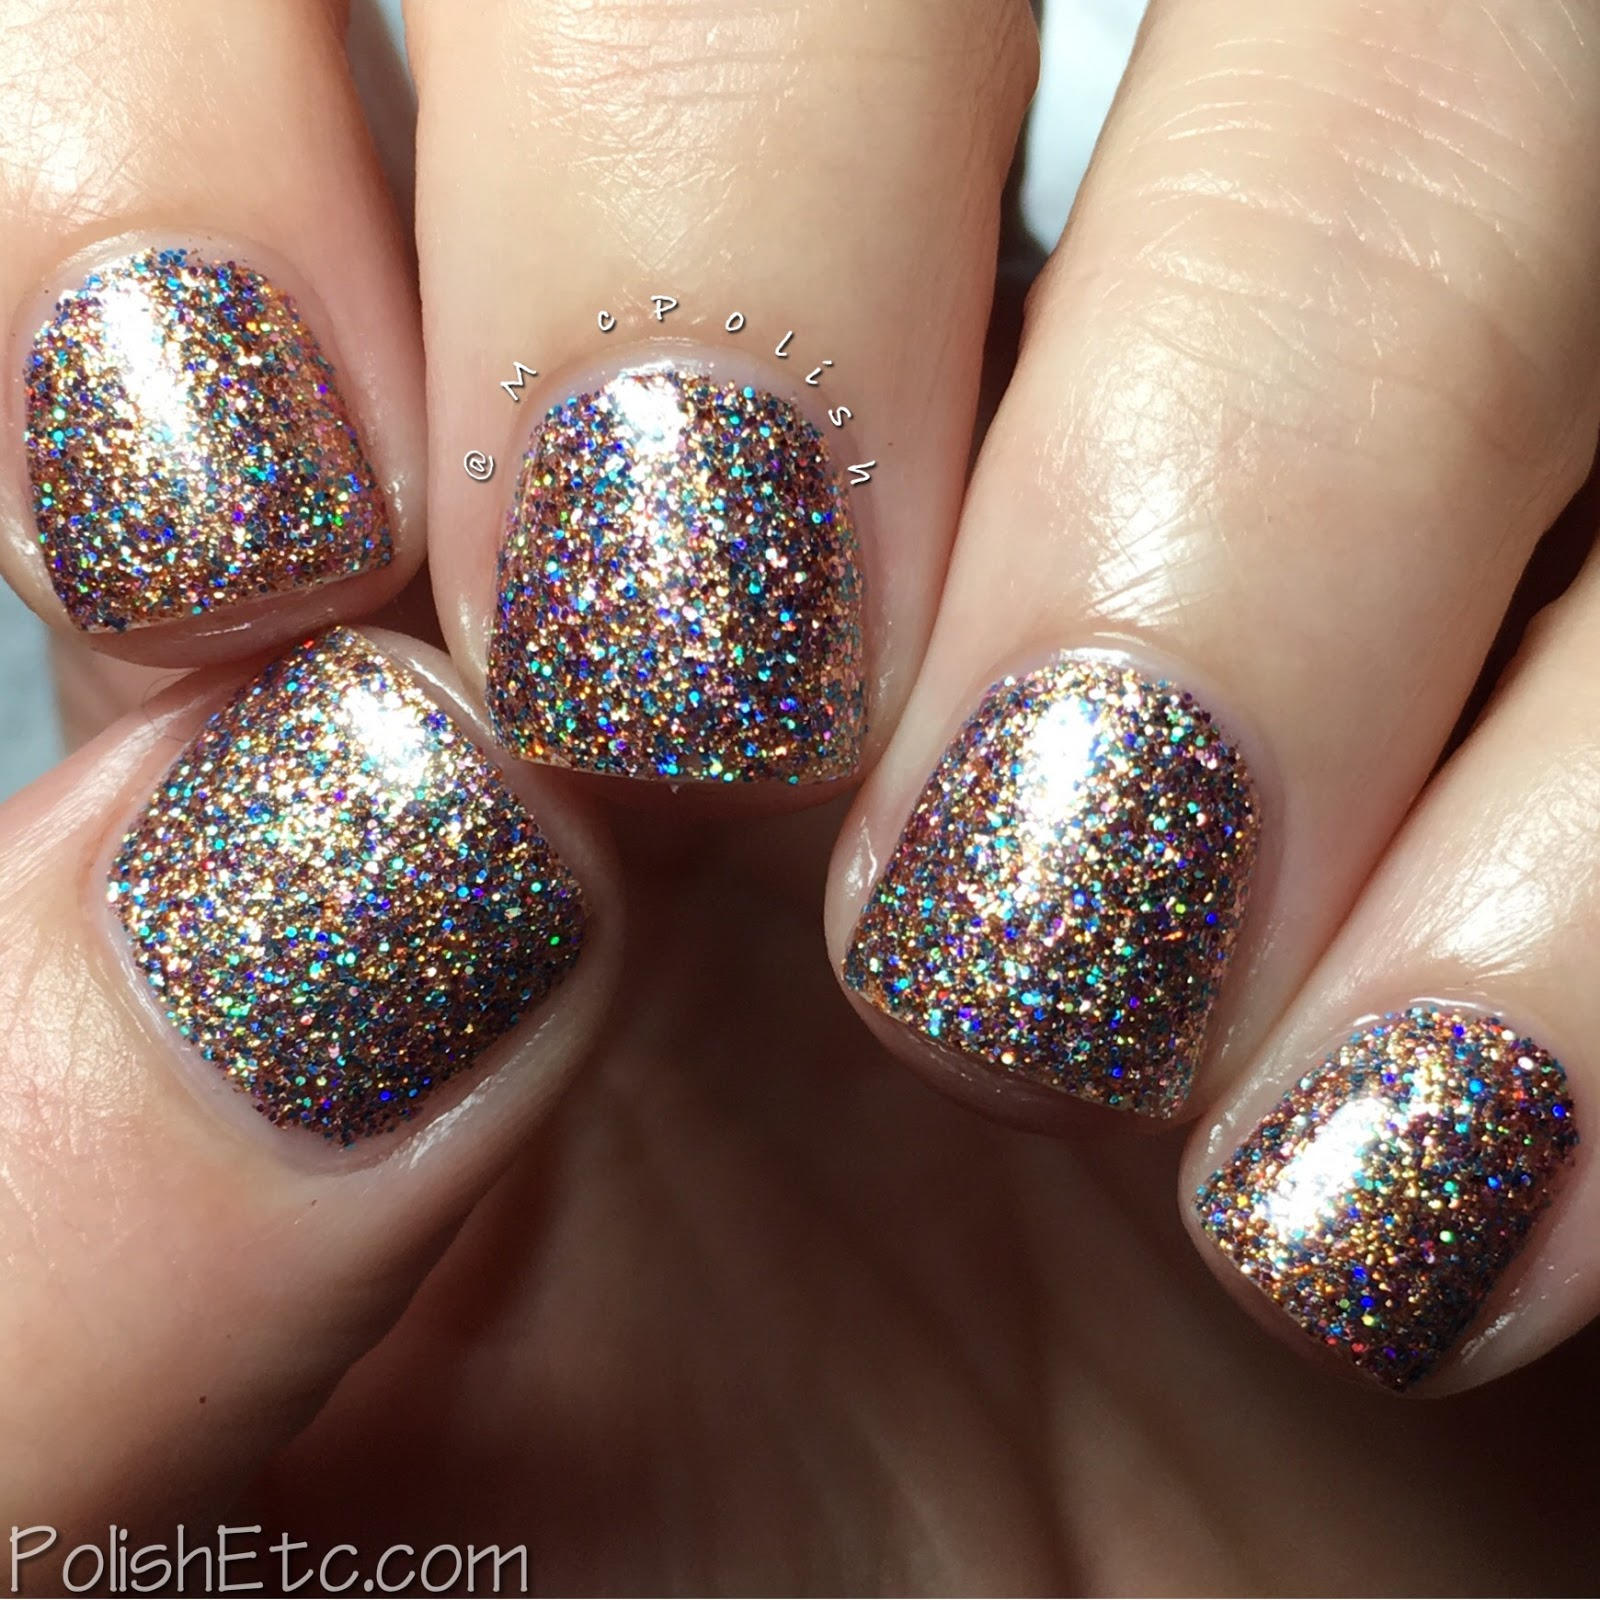 Indies Outside the Box: Fan-tastic Customs - McPolish - Glittertini by Top Shelf Lacquer